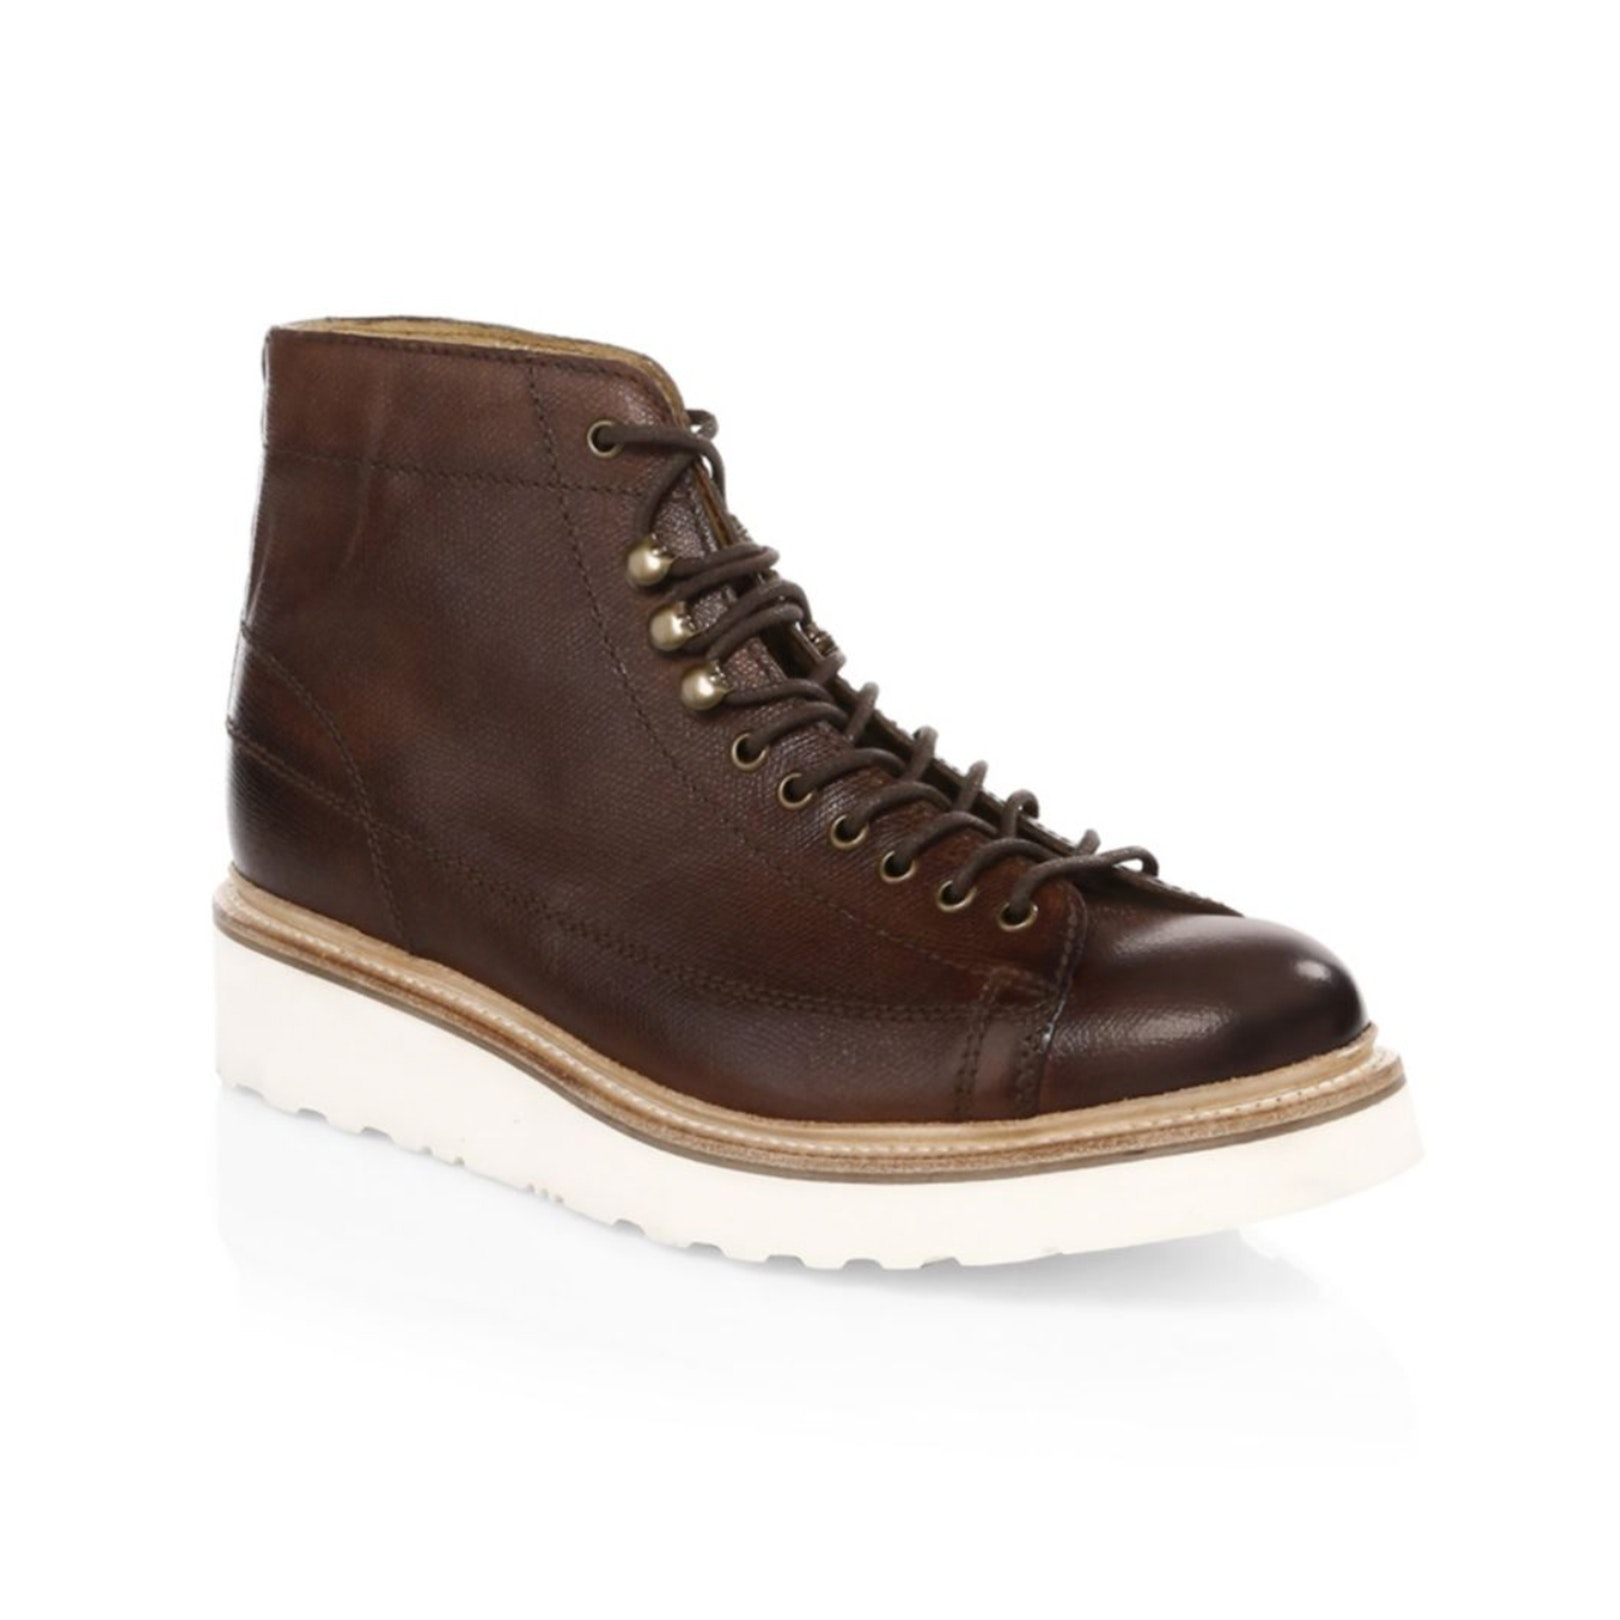 Grenson Andy Hiking Boots